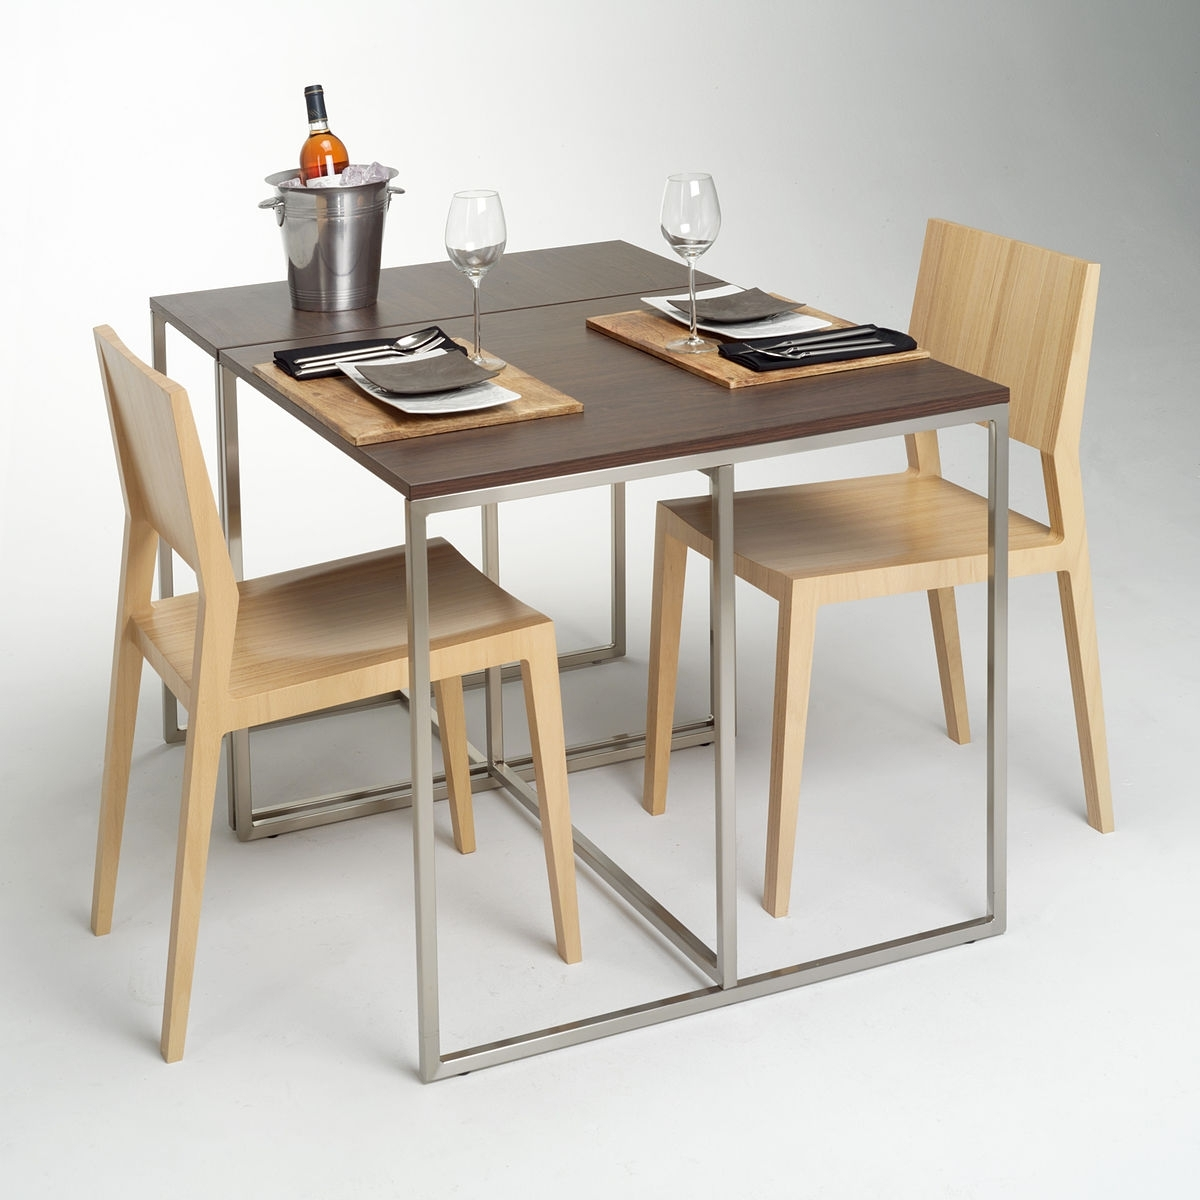 Non Wood Dining Tables Throughout Most Up To Date Furniture – Wikipedia (View 12 of 25)